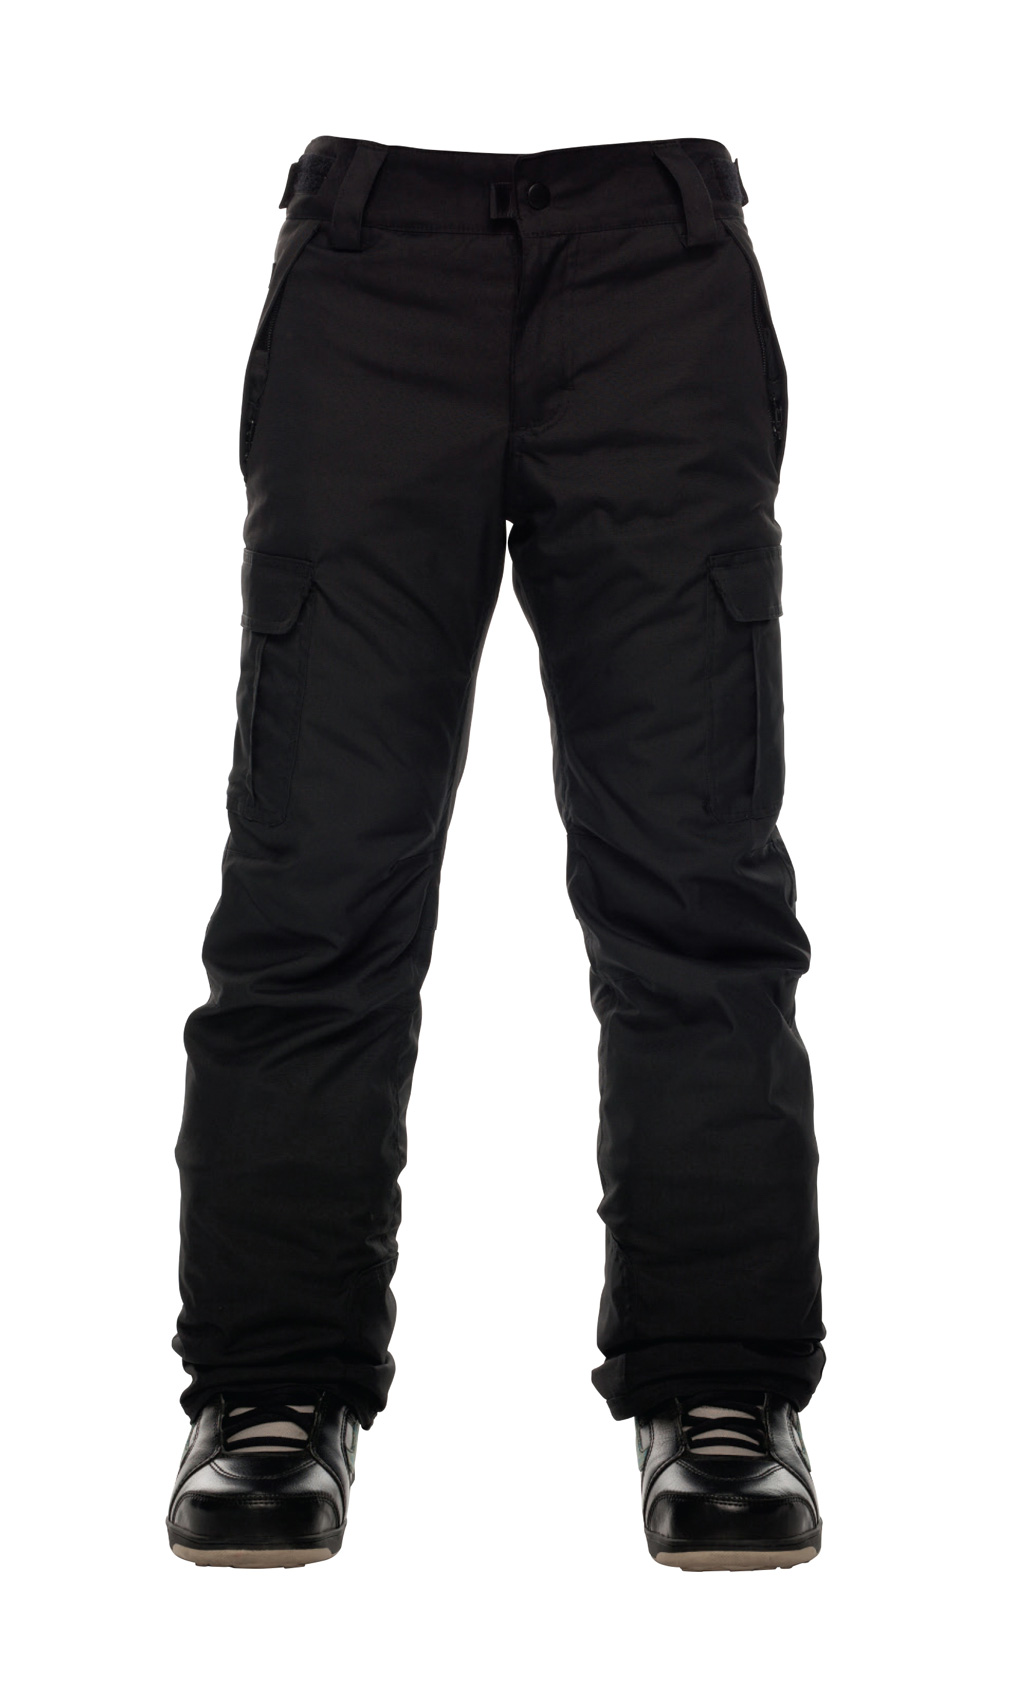 1c36dd477 686 Boys All Terrain Insulated Pant 2018